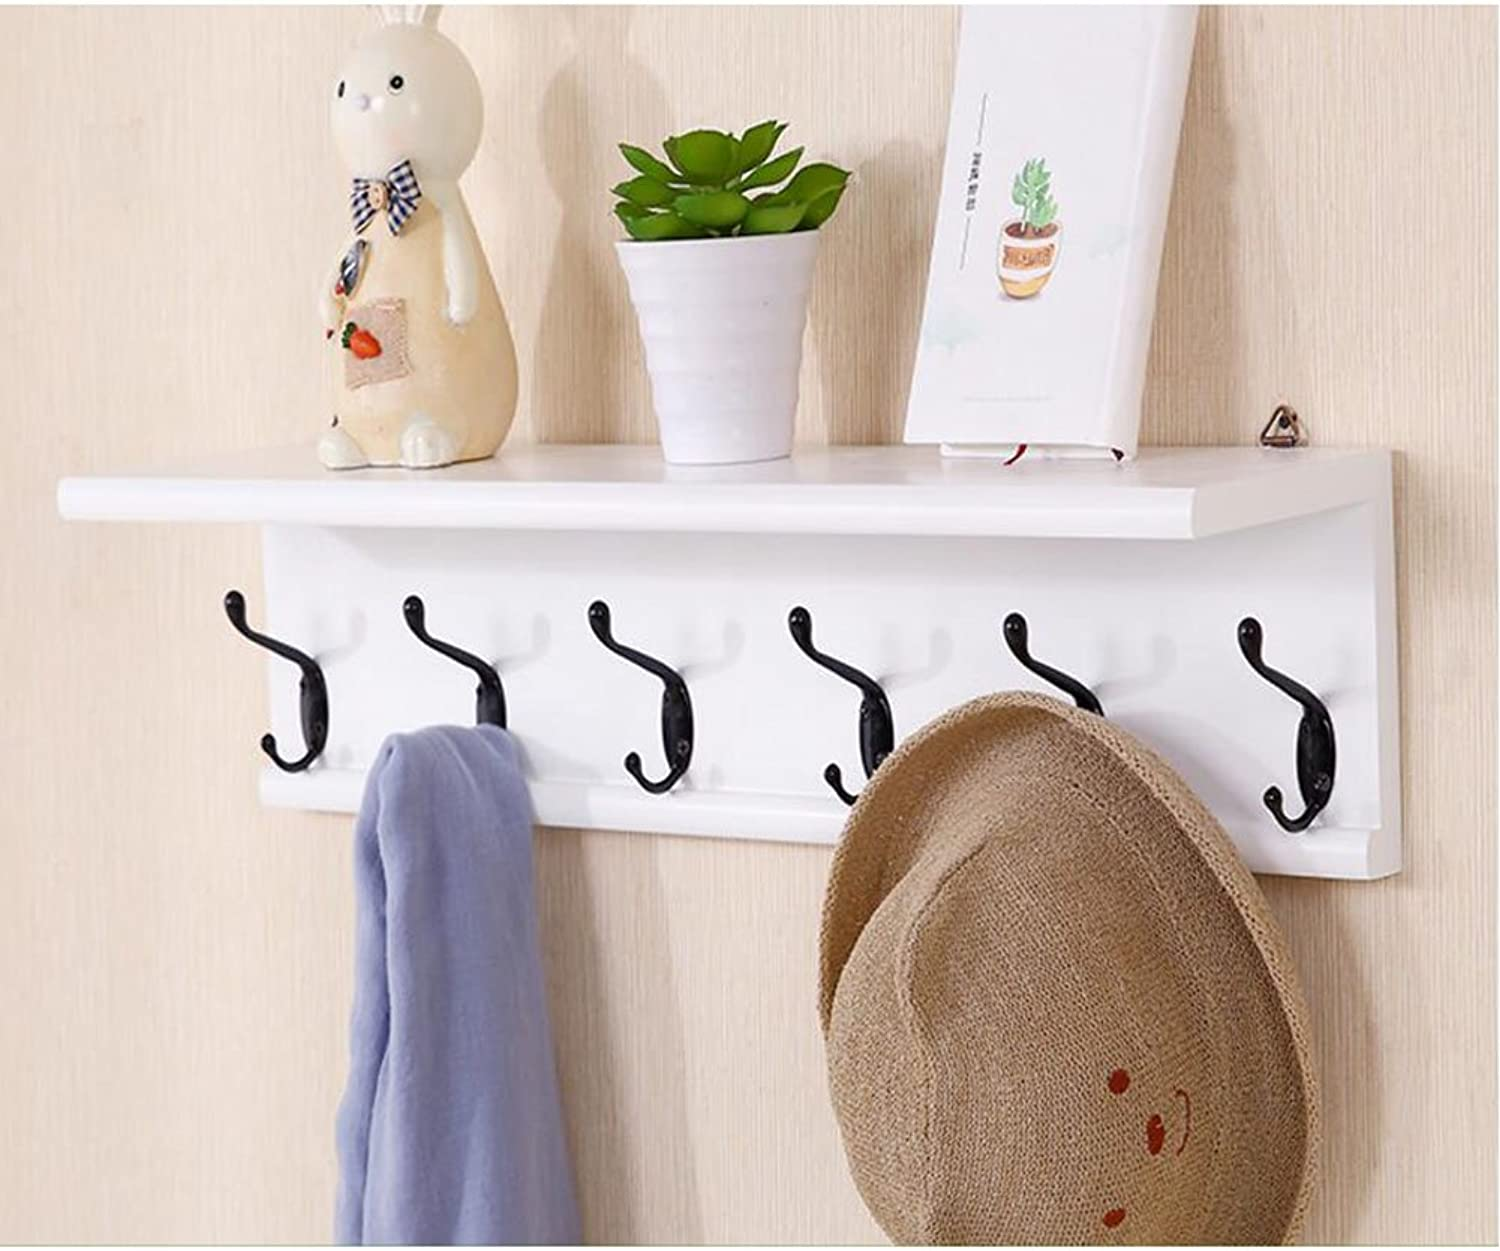 CJC Coat Rack Solid Wood Wall Hanging Decoration Storage Rack 6 Hooks Living Room Furniture Home Kitchen Hallway Multifunction